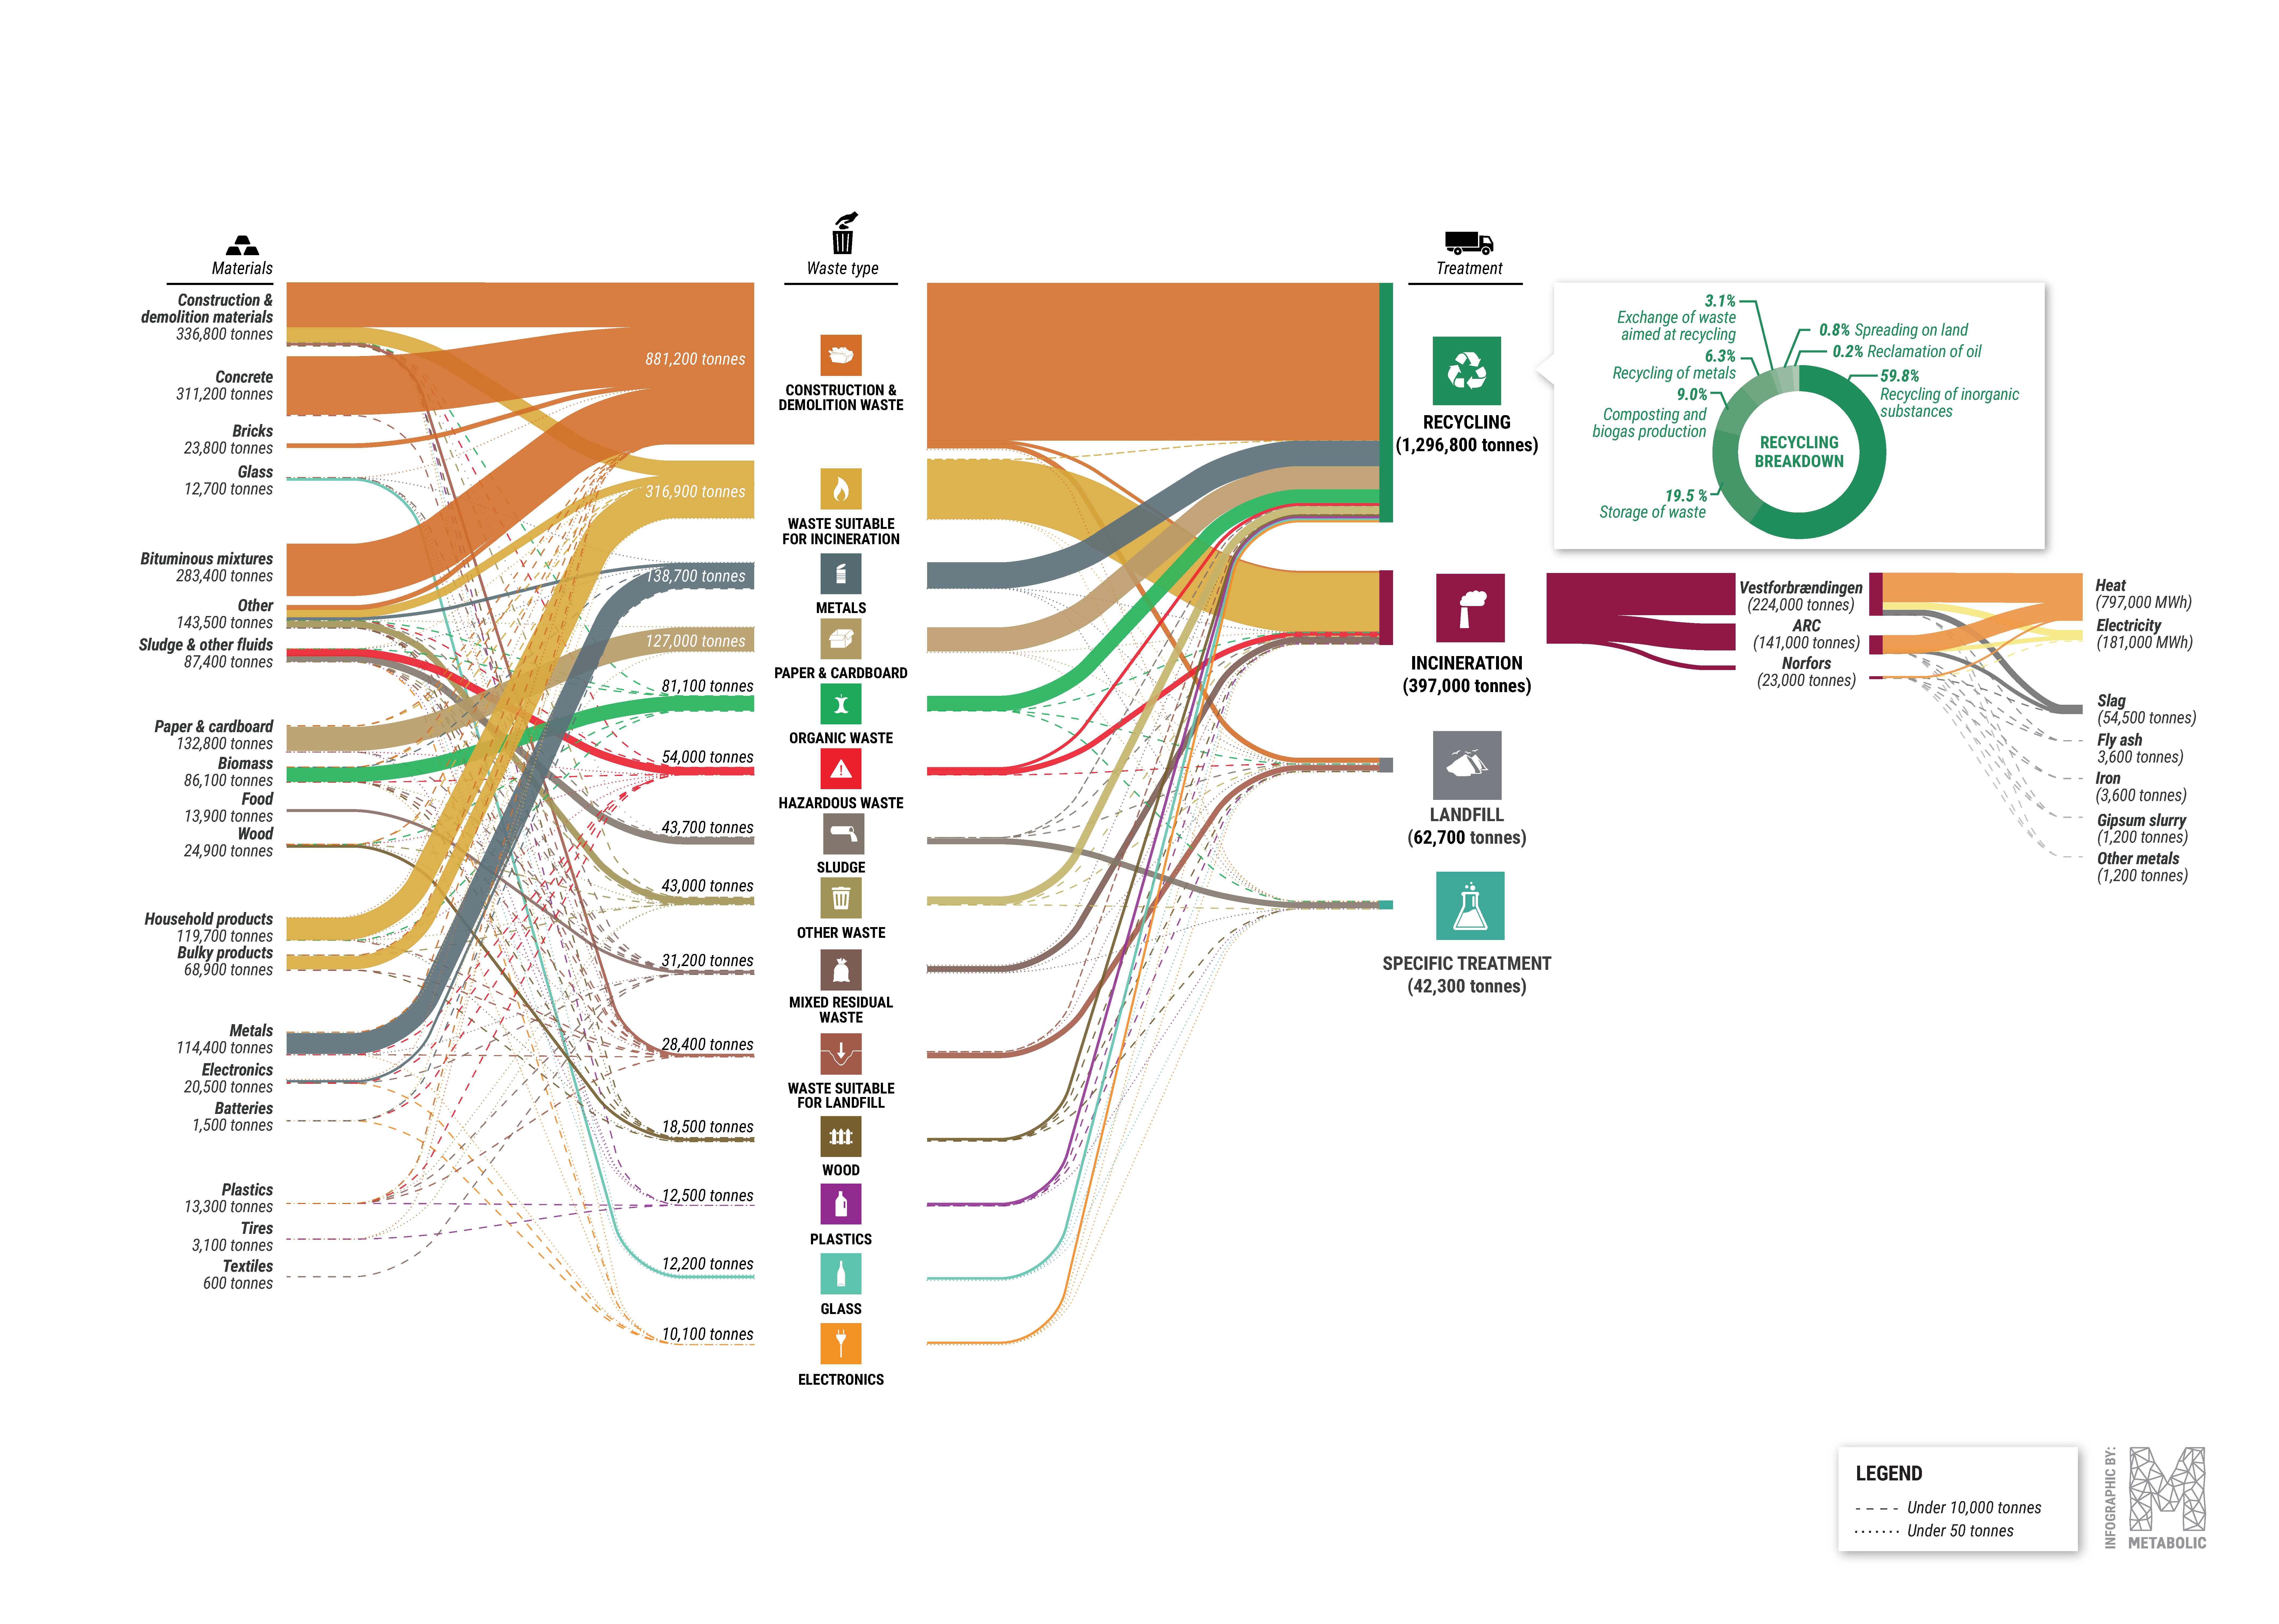 Sankey diagram of waste streams from businesses in the Capital Region. 2016, tonnes